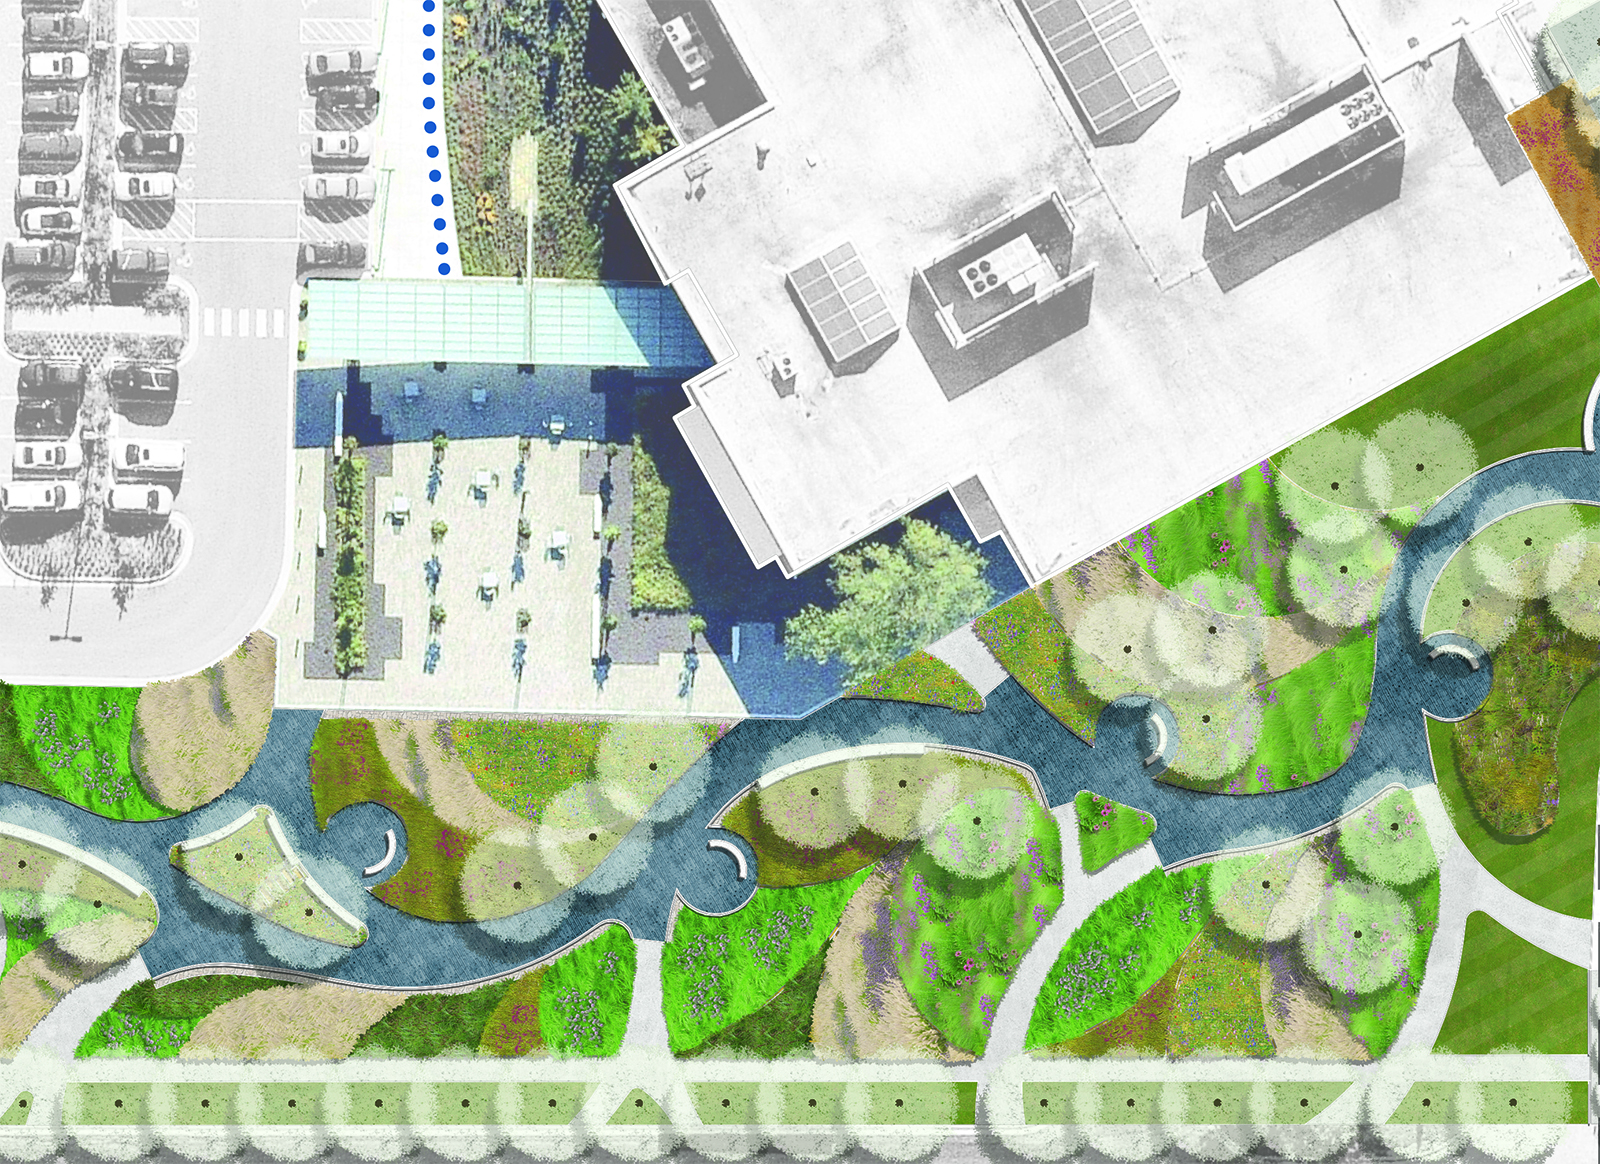 Swope Campus Stormwater Concept